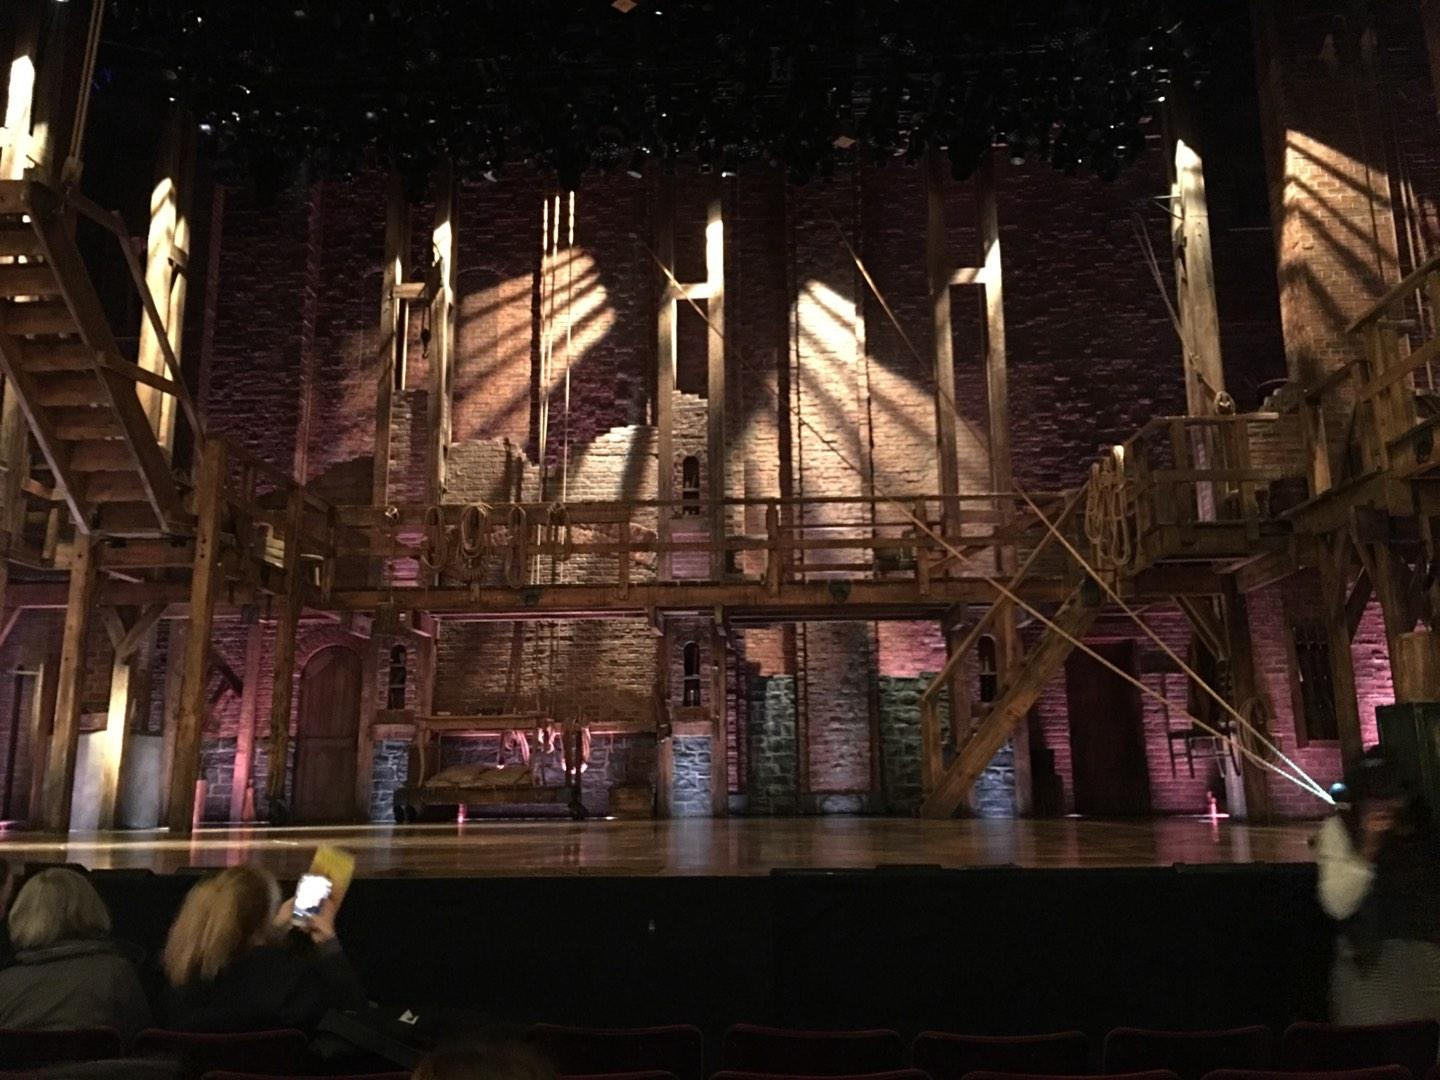 Richard Rodgers Theatre Section Orch Center Row E Seat 106